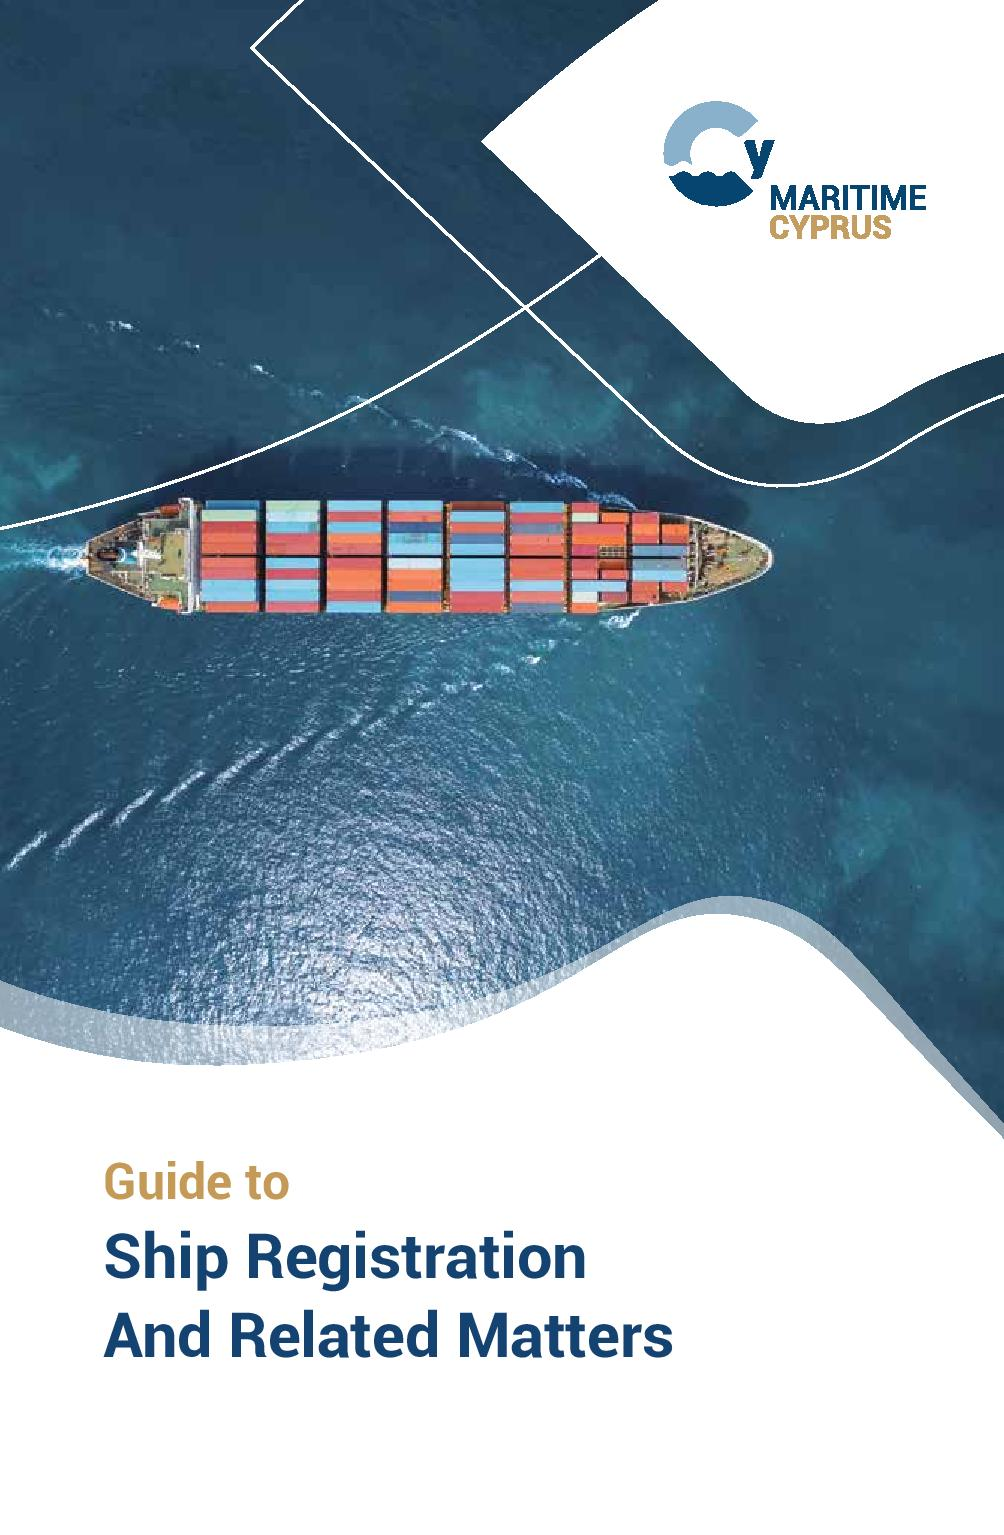 Maritime Cyprus: Guide to Ship Registration